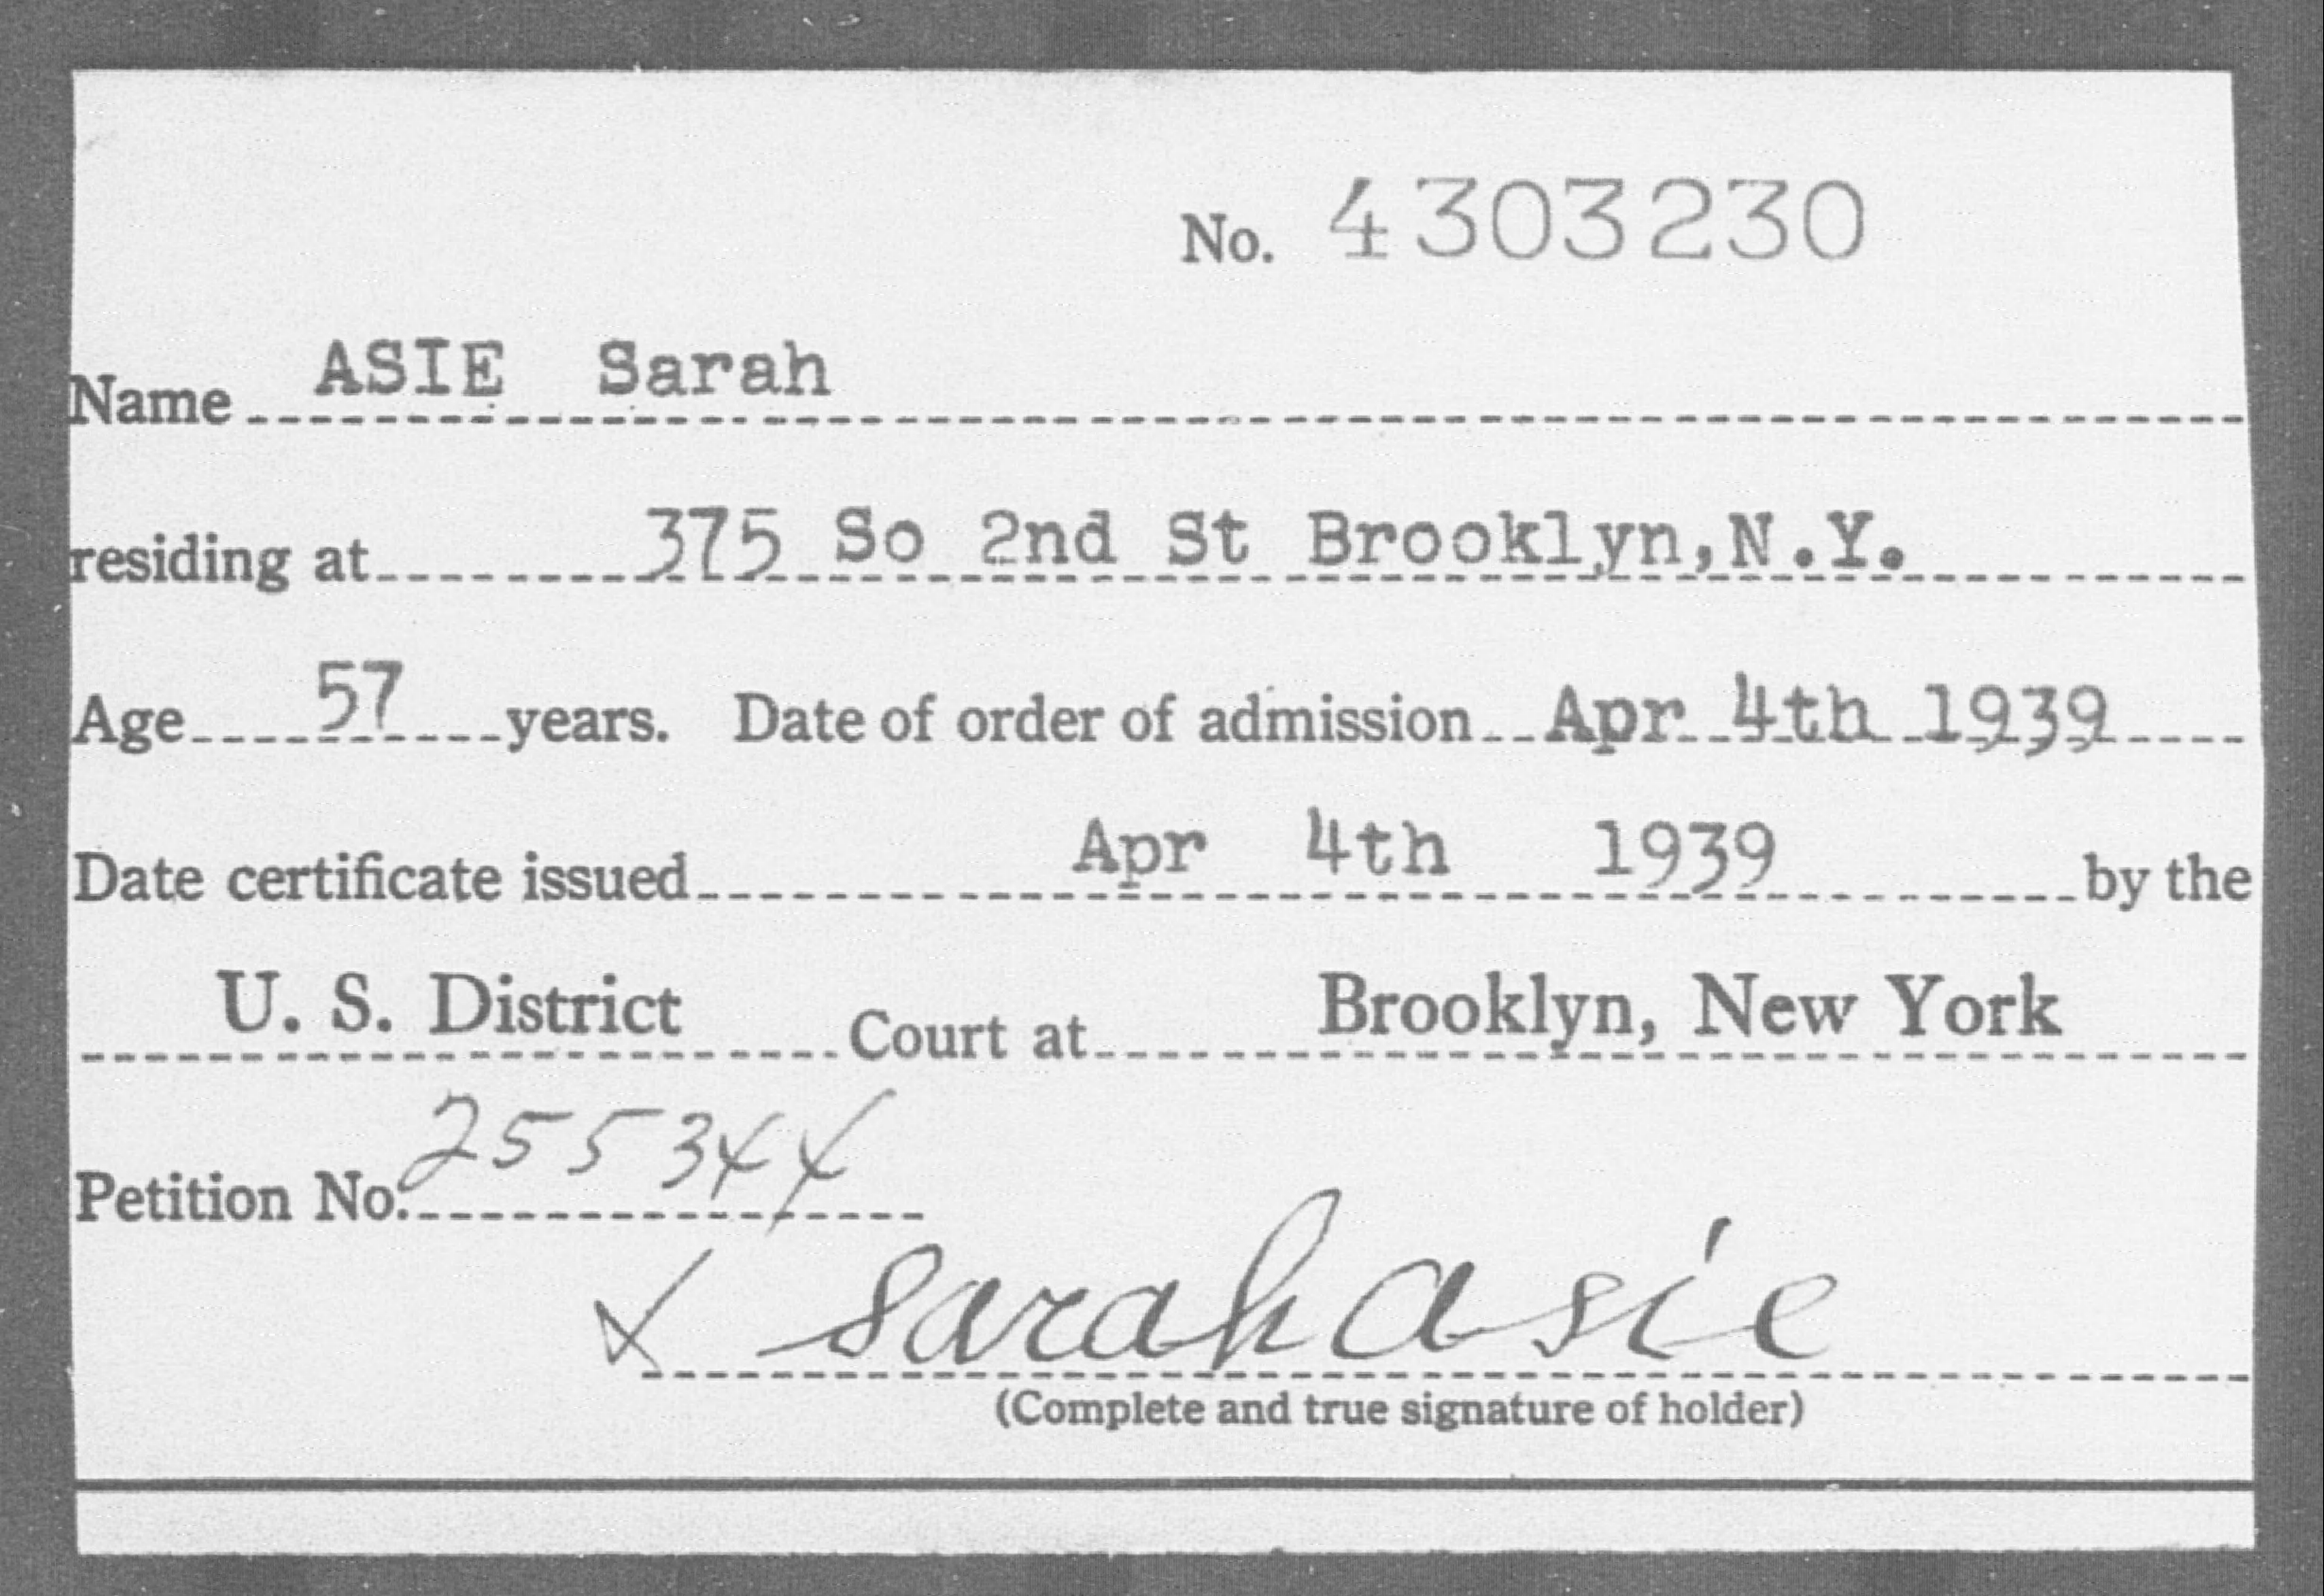 ASIE Sarah - Born: [BLANK], Naturalized: 1939